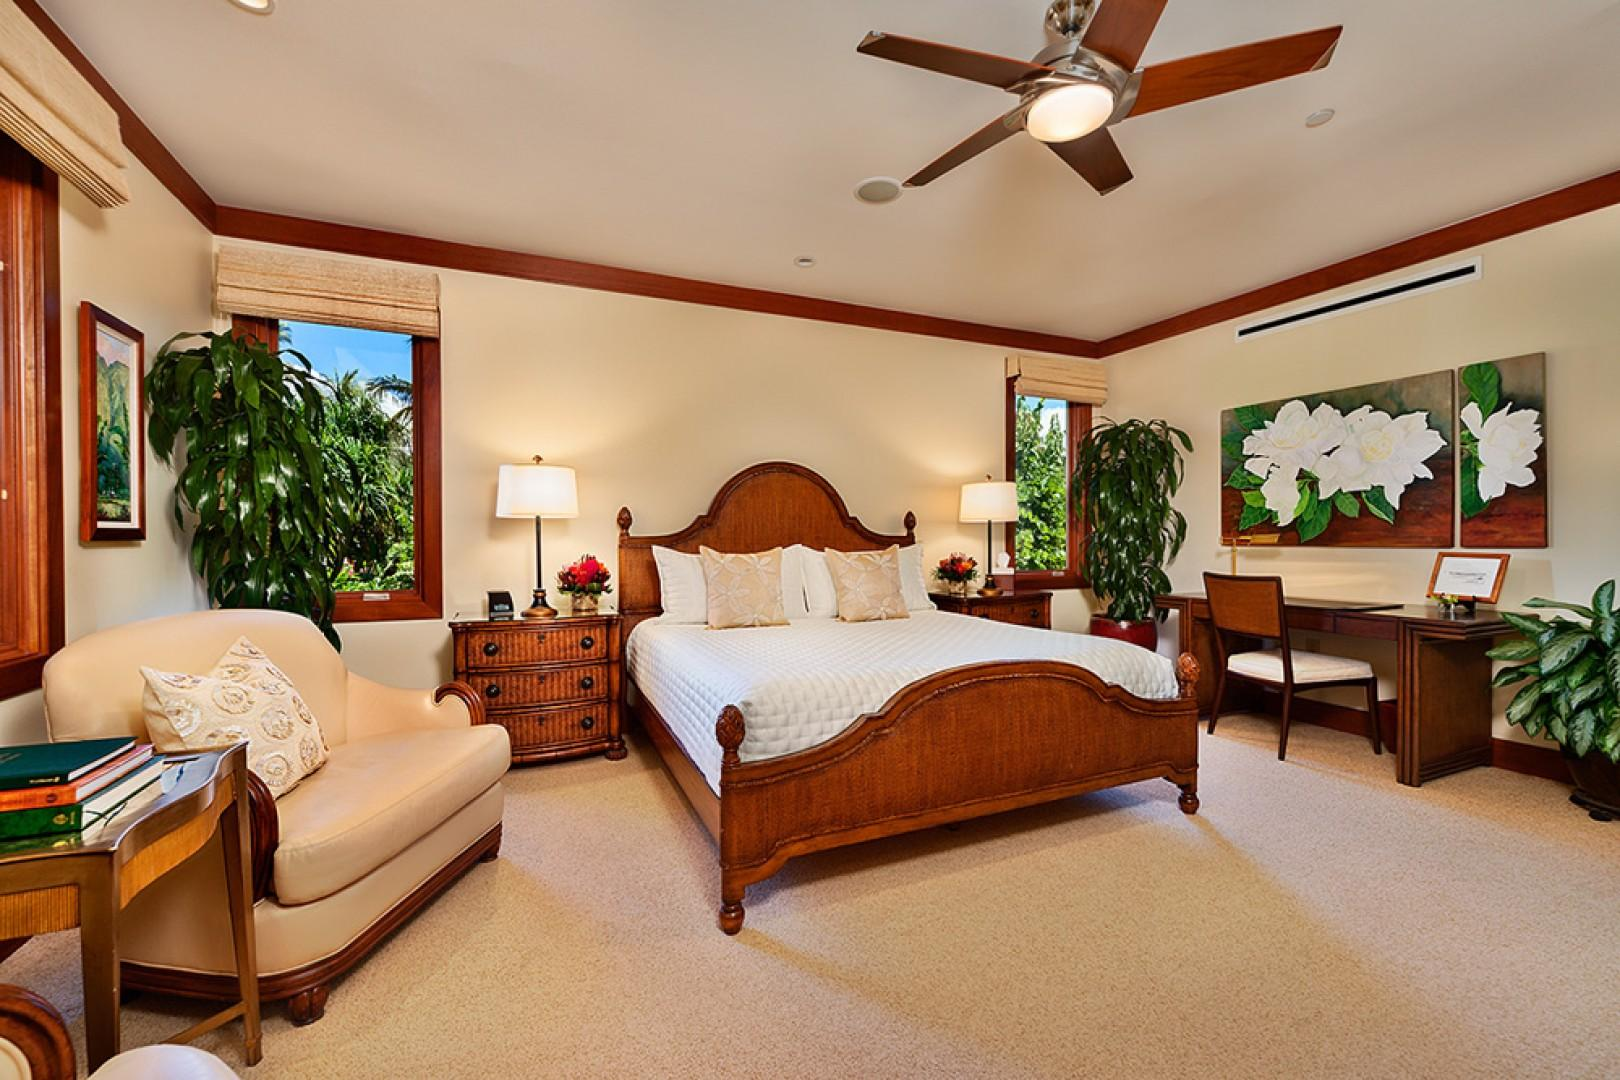 The Second Master Bedroom Suite with Direct Pool, Ocean and Sunset Views, King Bed, Leather Seating, Large Desk, Samsung HD Smart TV/DVD, En-Suite Private Bath, and Original Oil Paintings by Betty Hay Freeland and Sarah Howard of Maui